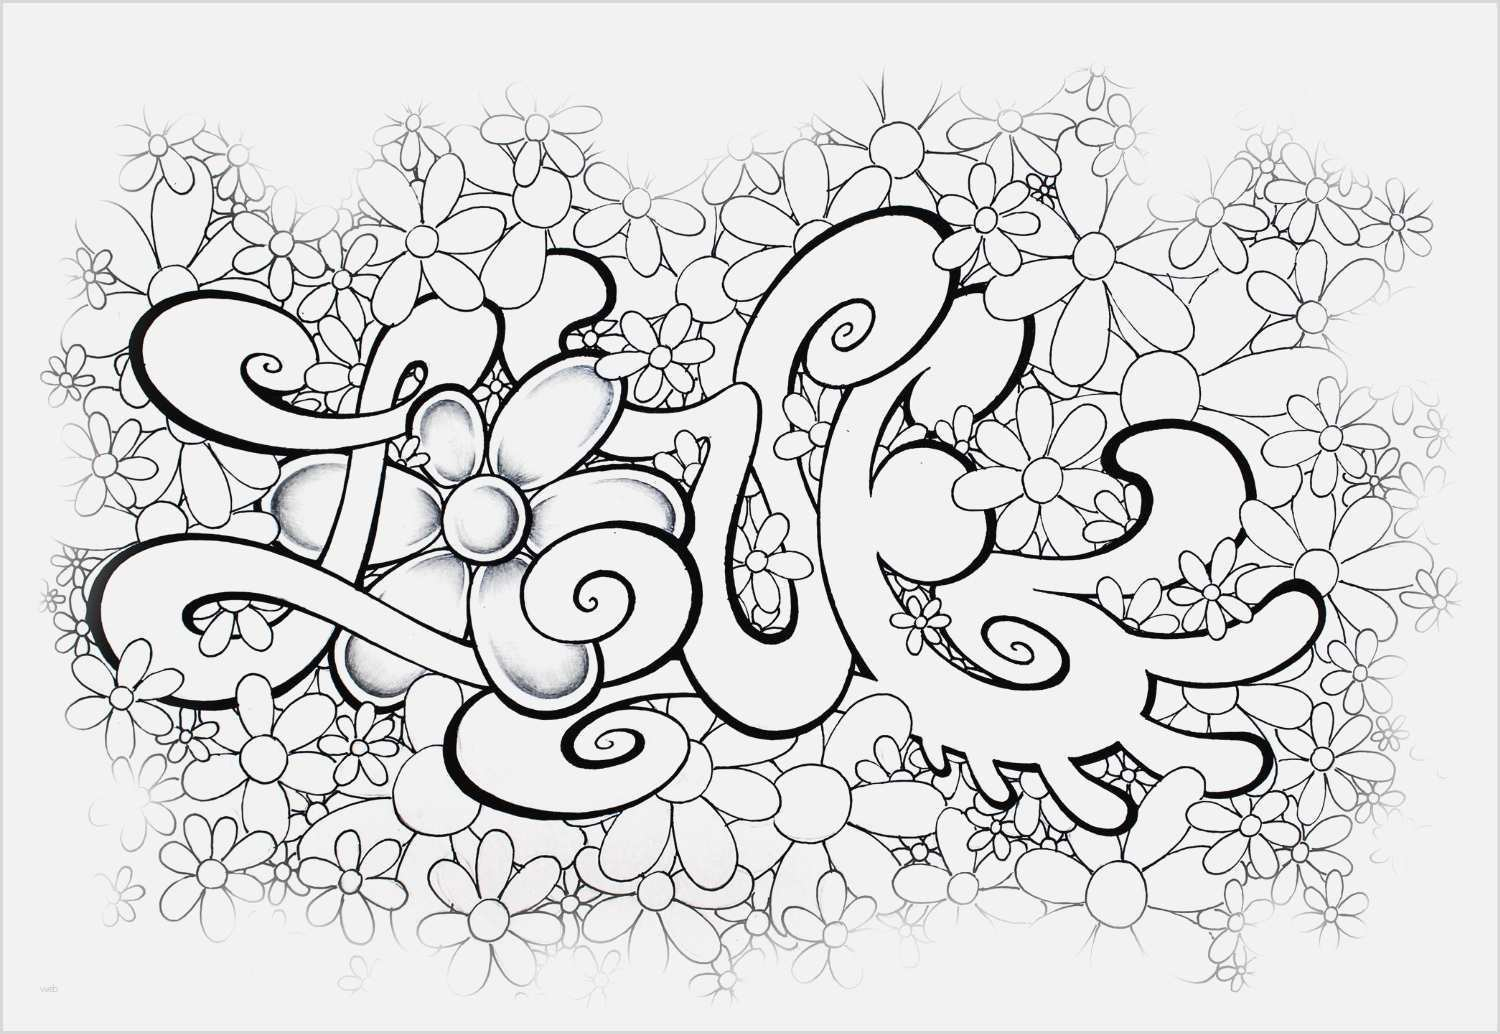 Graffiti Schrift Vorlagen Schon Graffiti Vorlagen Zum Ausmalen Az Ausmalbilder Love Coloring Pages Coloring Pages Heart Coloring Pages